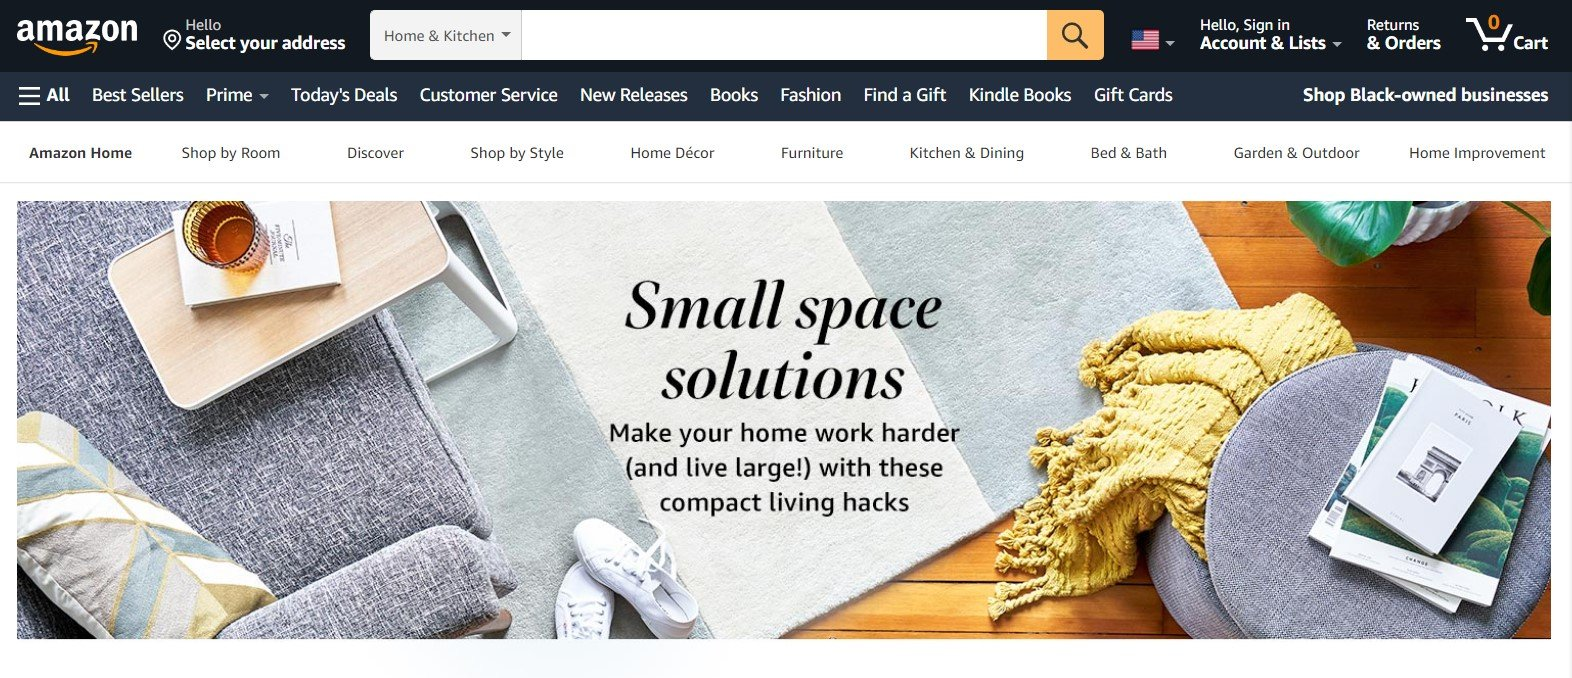 Amazon'd hidden section for small space solutions